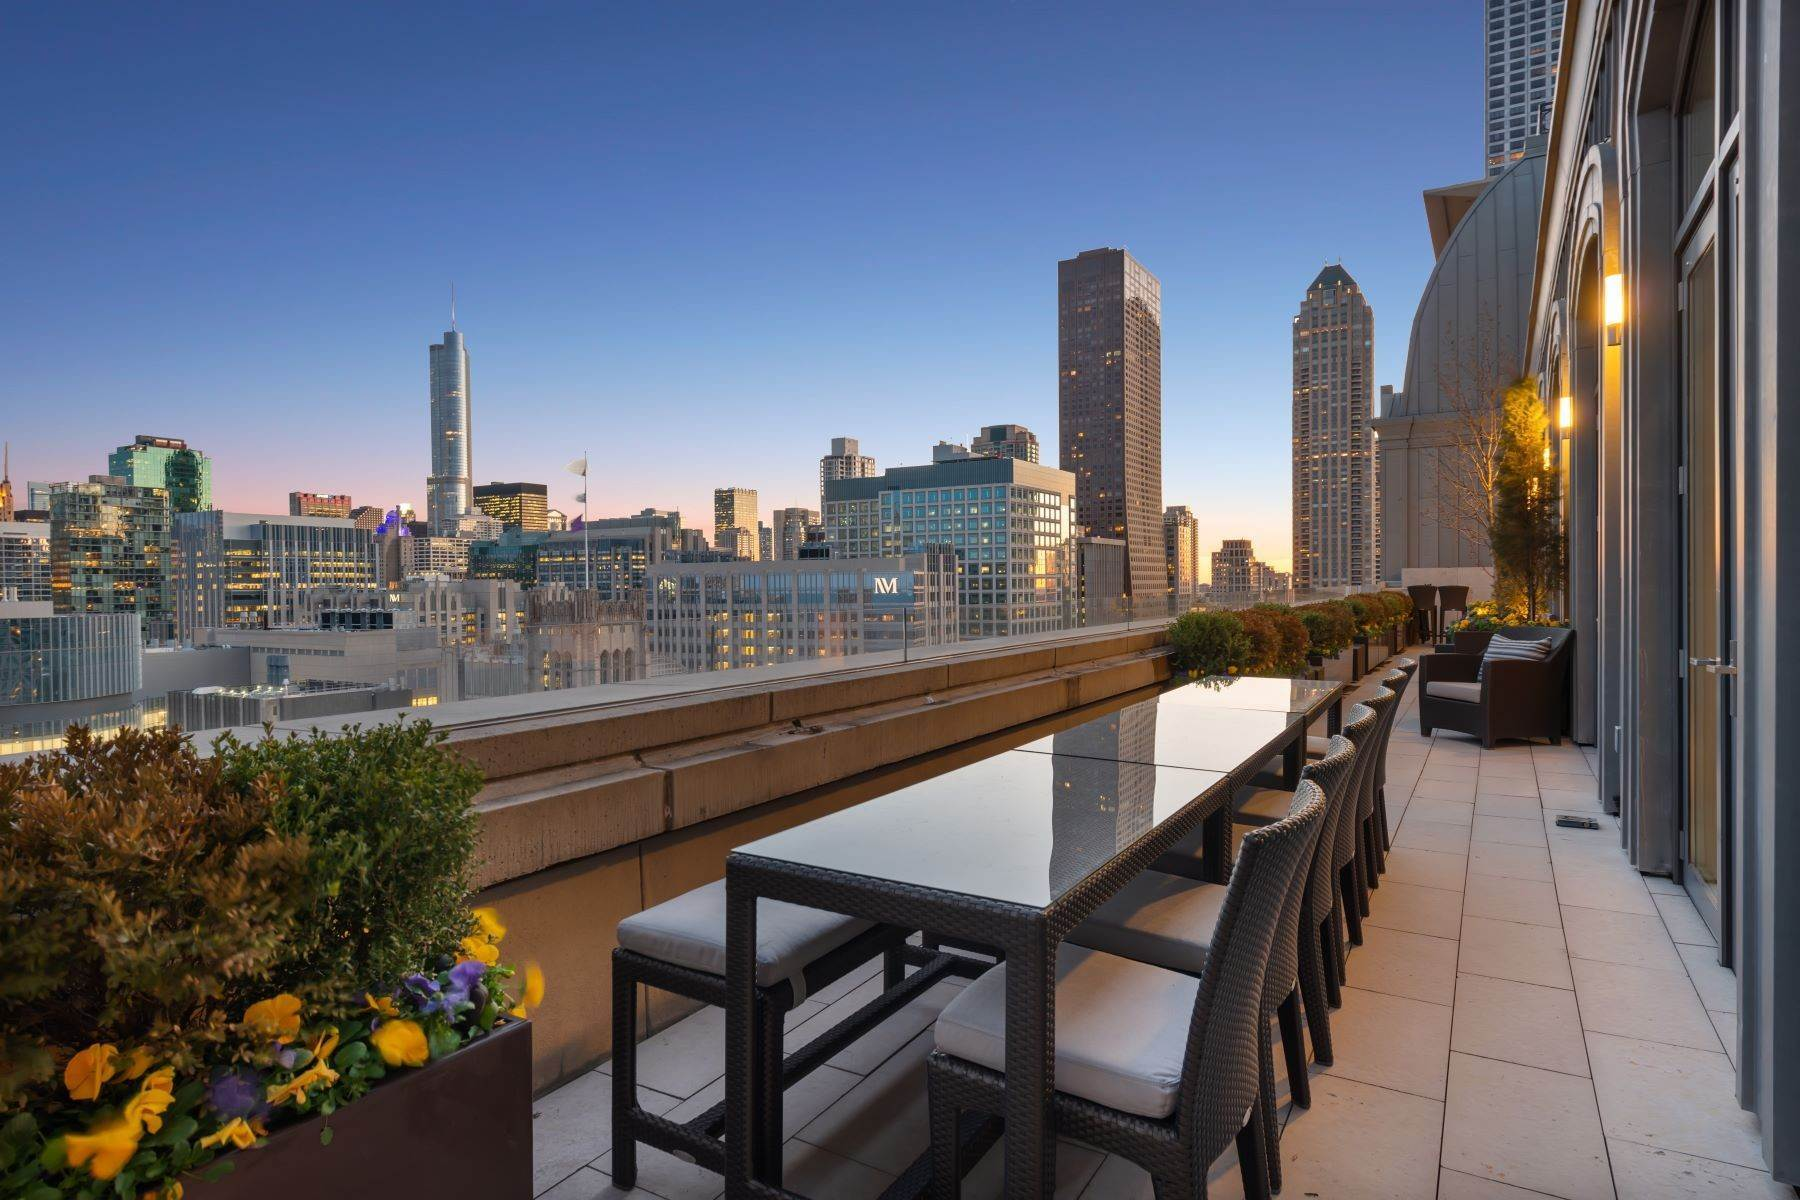 2. Condominiums at 840 N Lake Shore Drive, Unit 2601 Chicago, Illinois 60611 United States